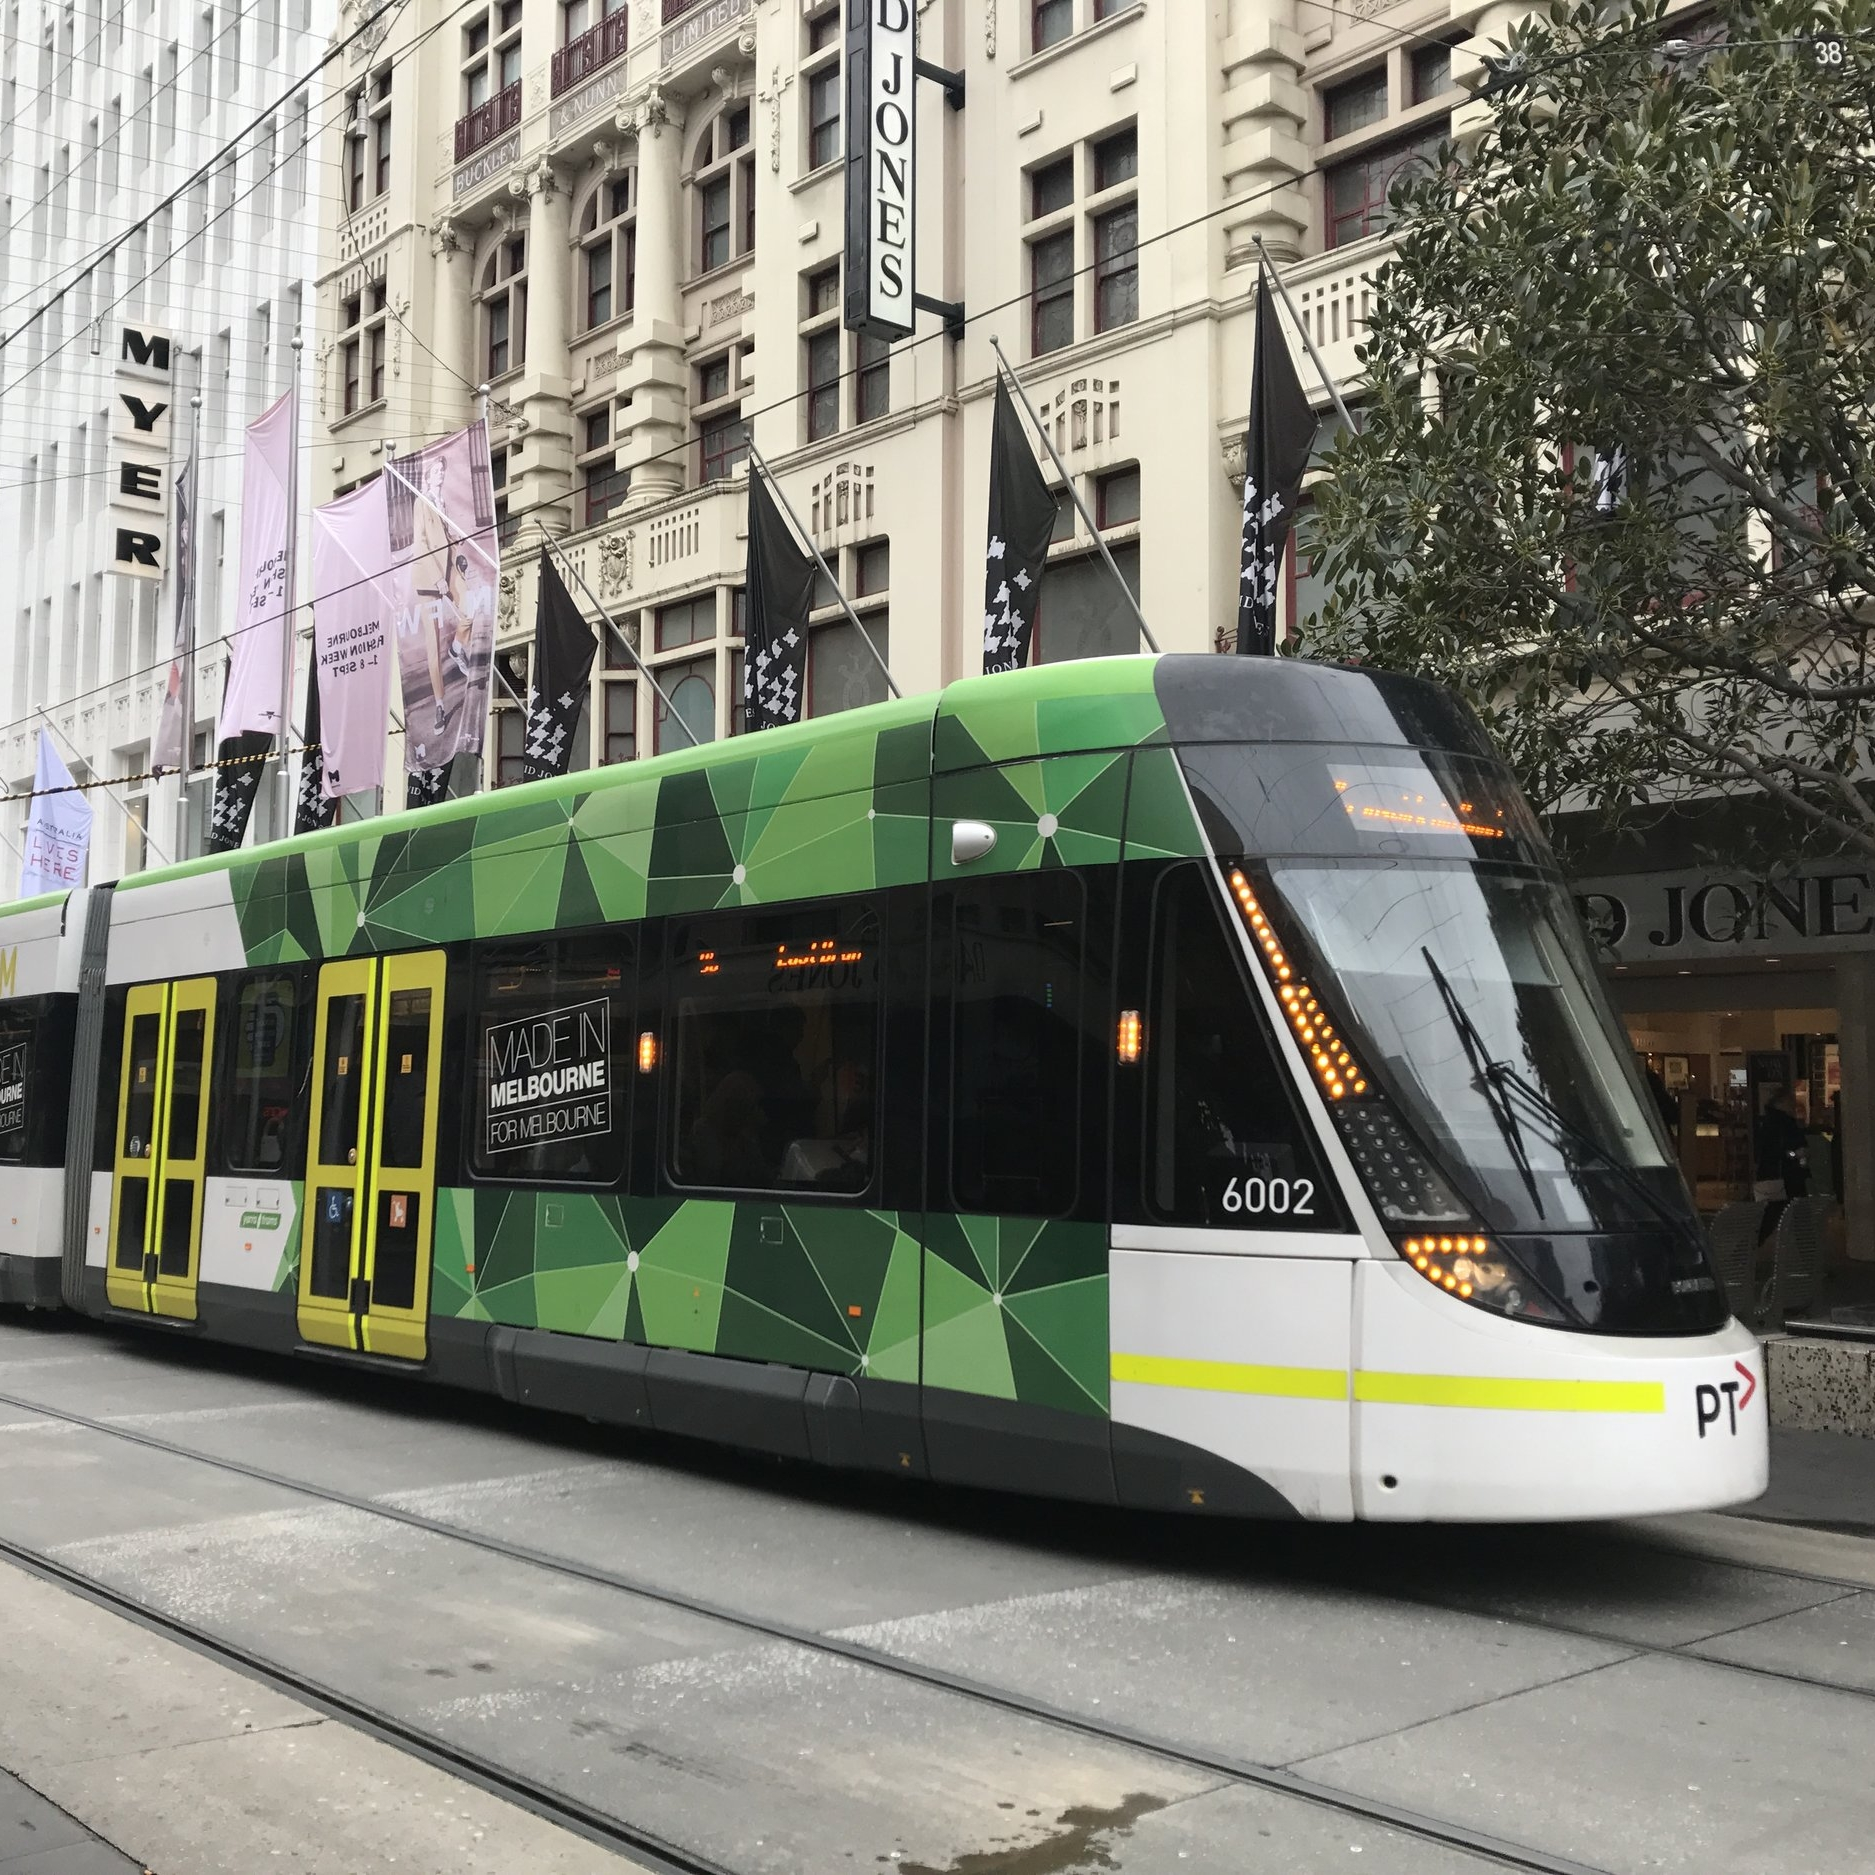 Melbourne tram by The Doubtful Traveller